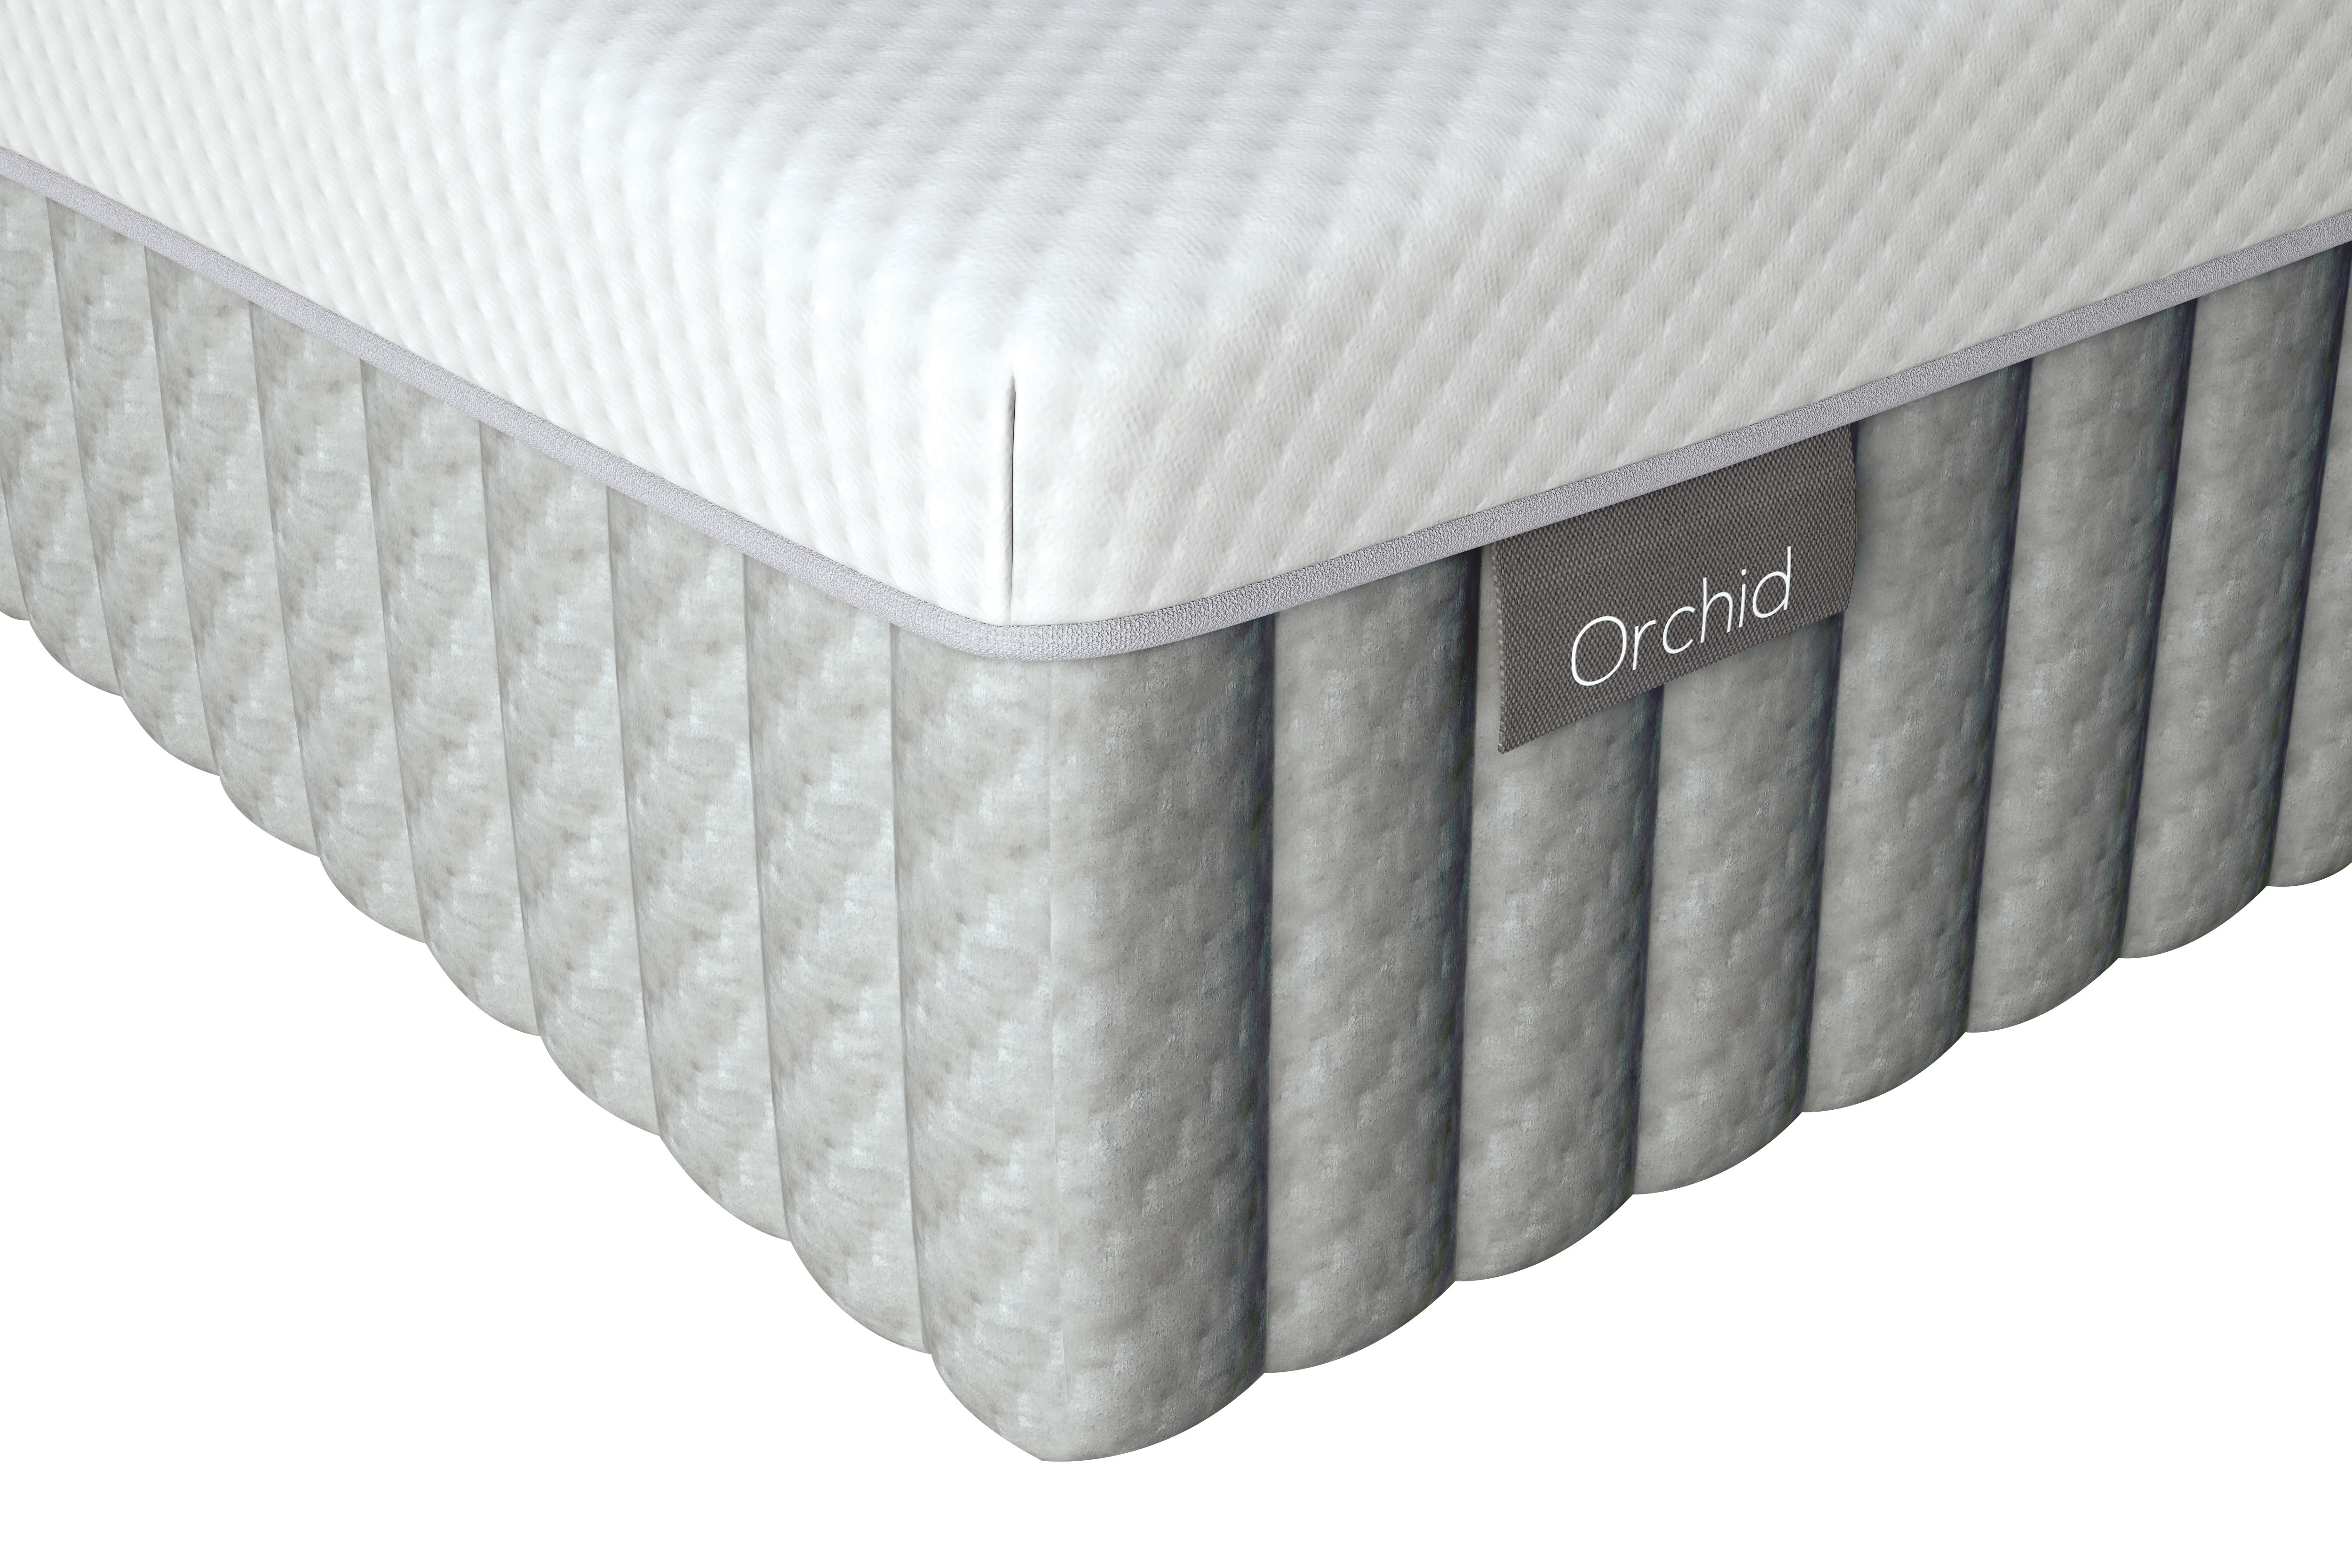 orchid mattress available from the world of beds, doncaster